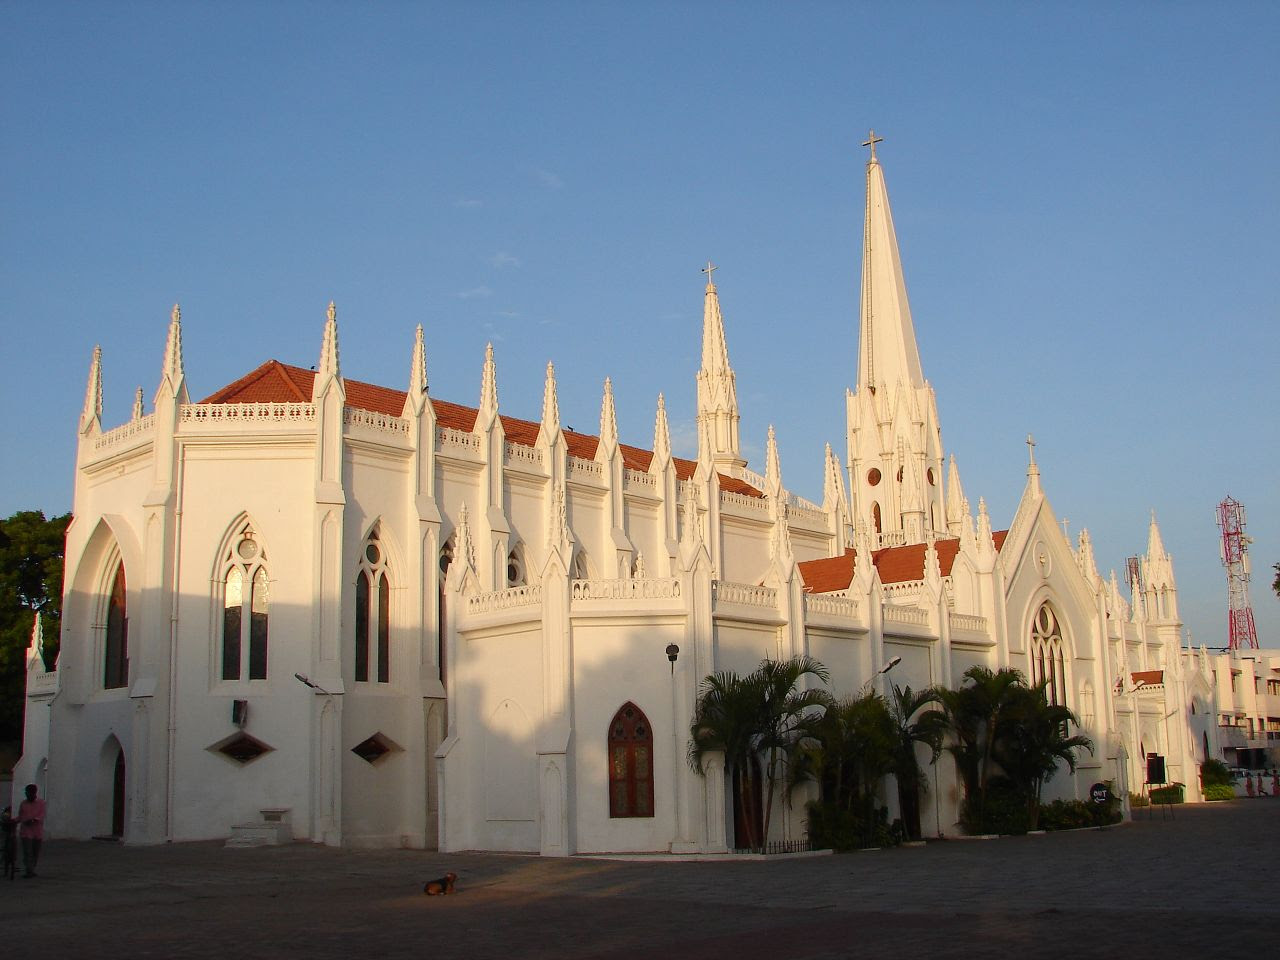 Thomas Church, Santhome, Chennai